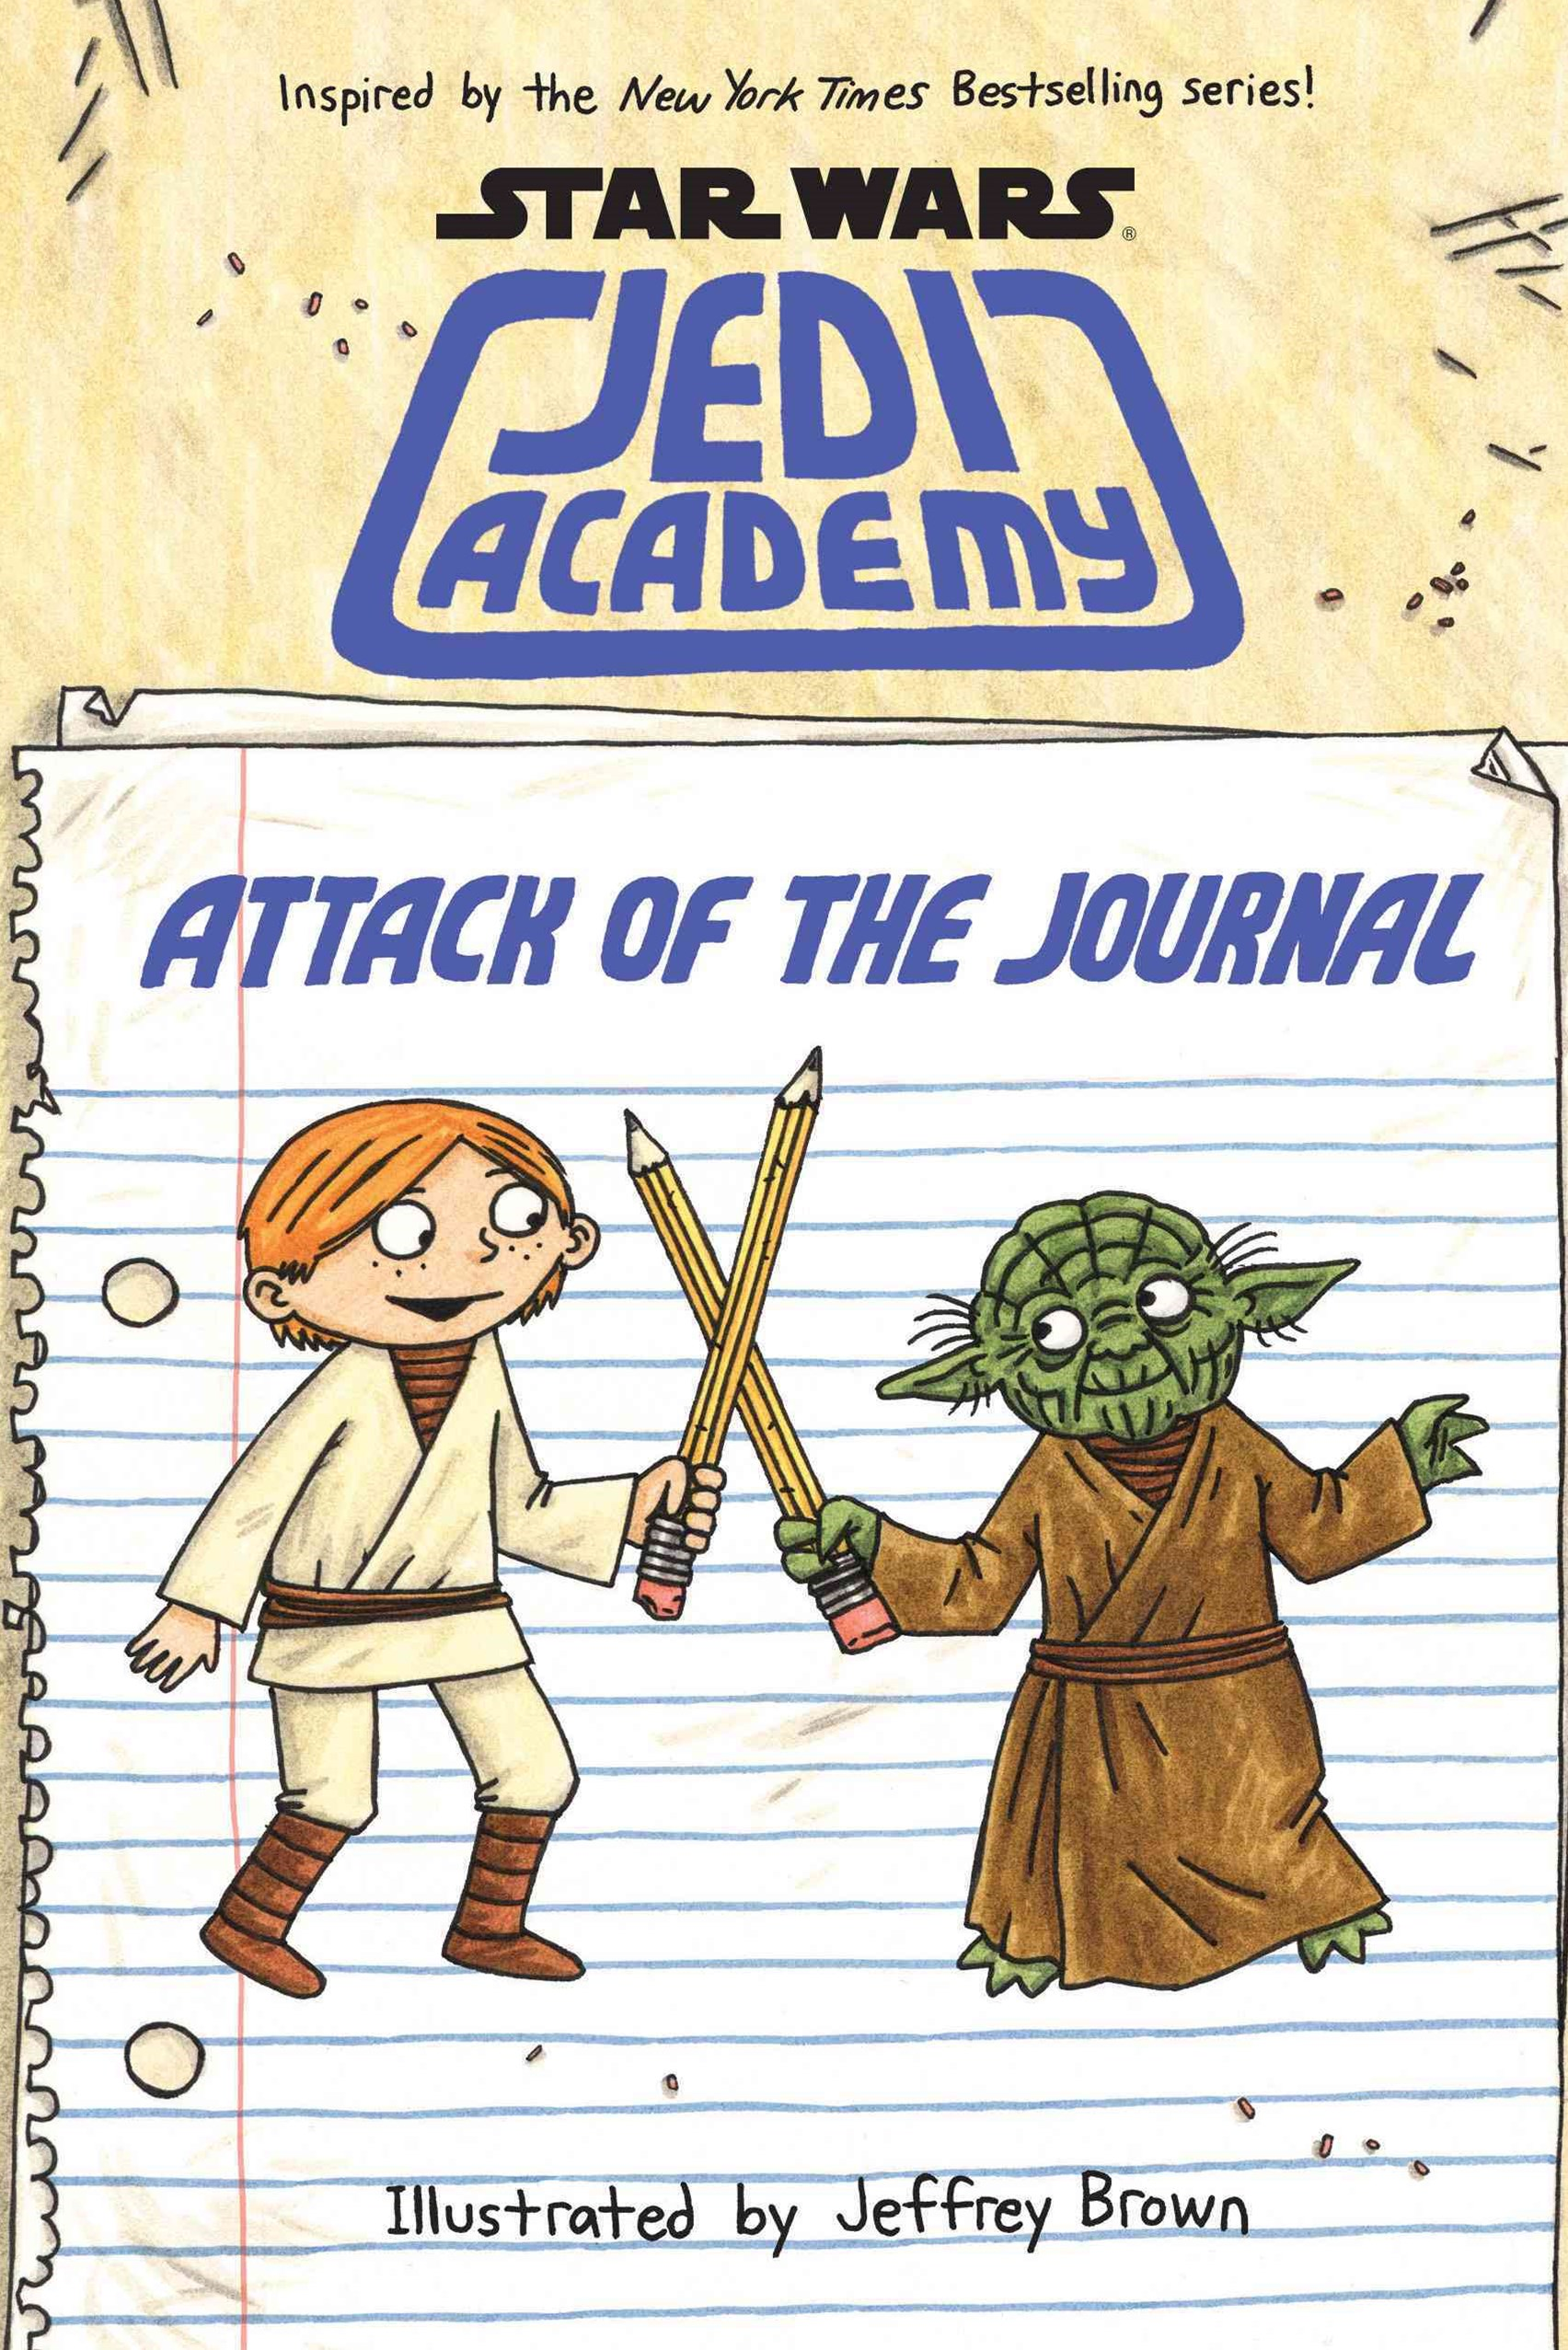 Jedi Academy Journal (Star Wars: Jedi Academy)